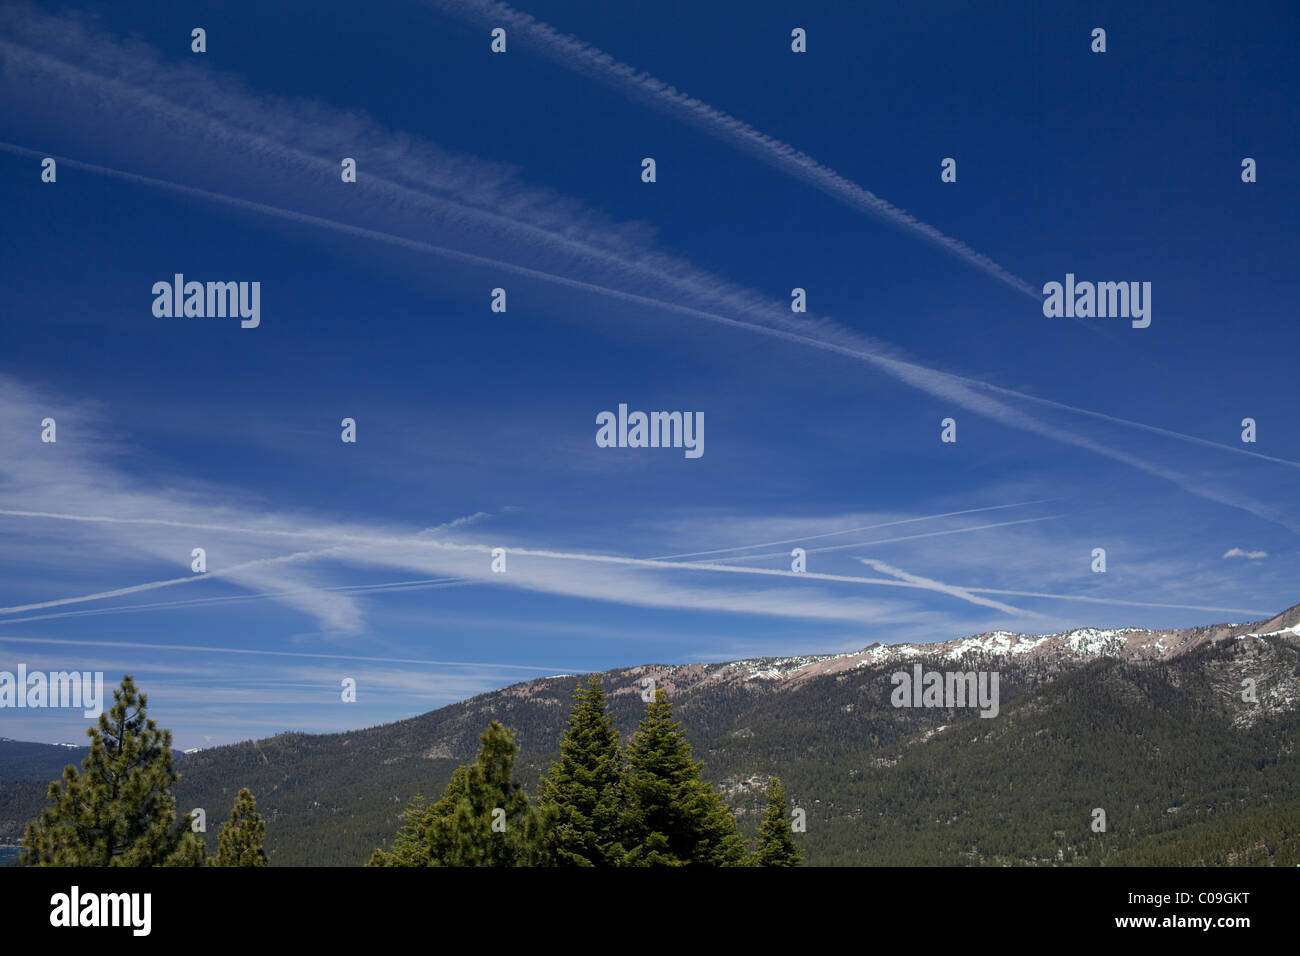 Vapor trails from high-flying jet airplanes in blue sky above Lake Tahoe on the border between California and Nevada - Stock Image